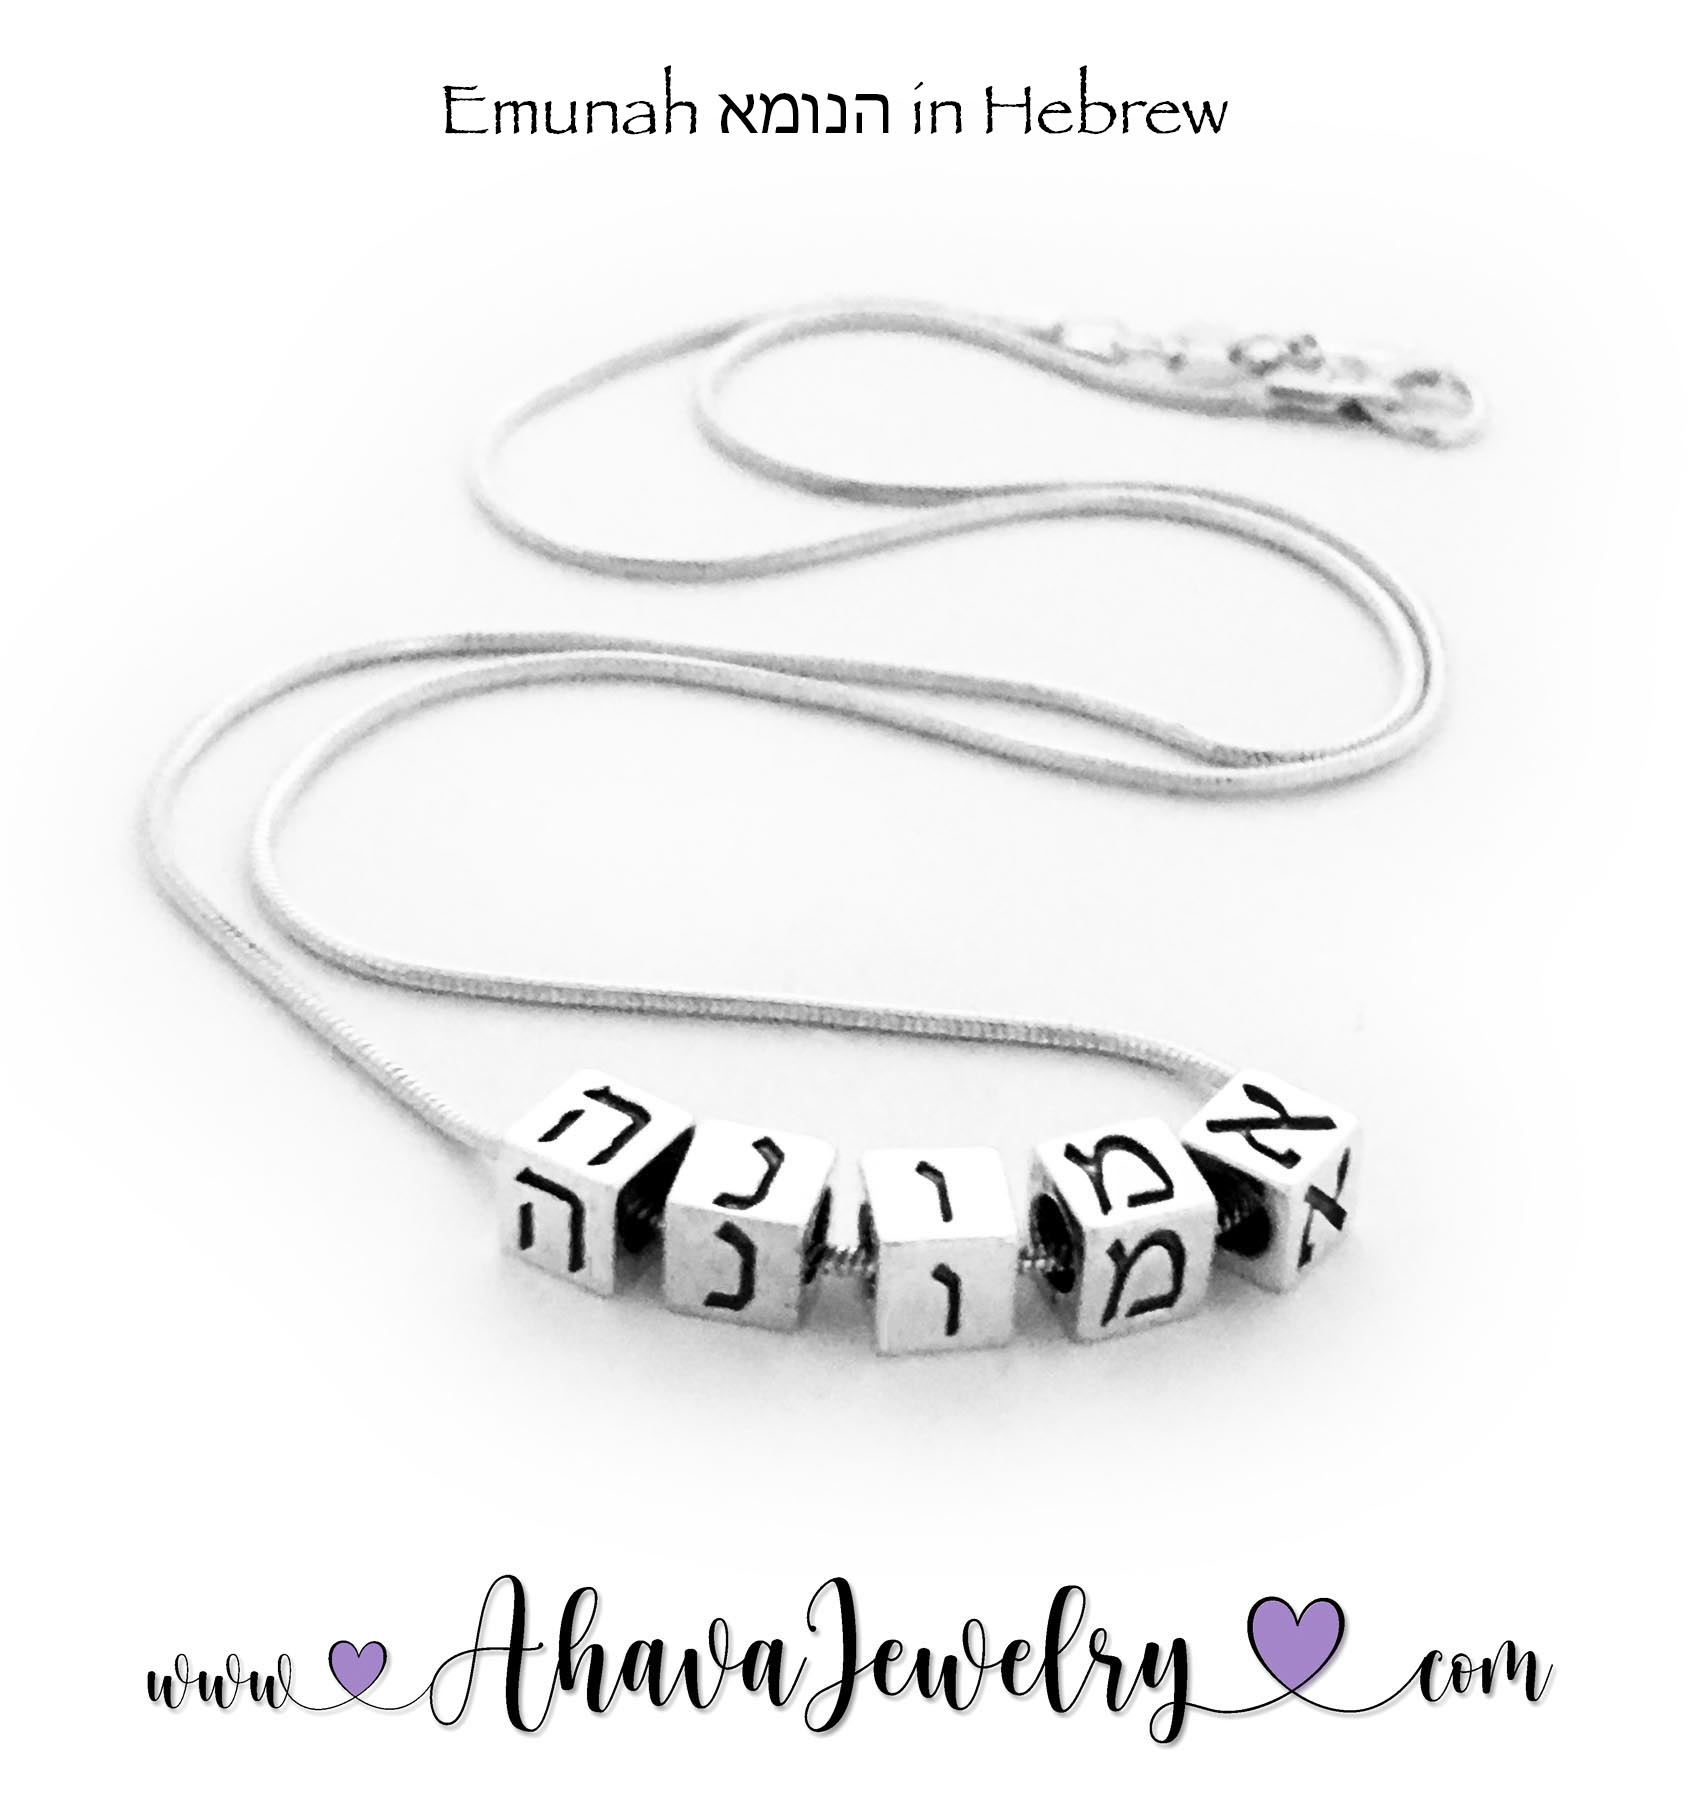 Emunah or אמונה in Hebrew or English  on a Sterling Silver Necklace